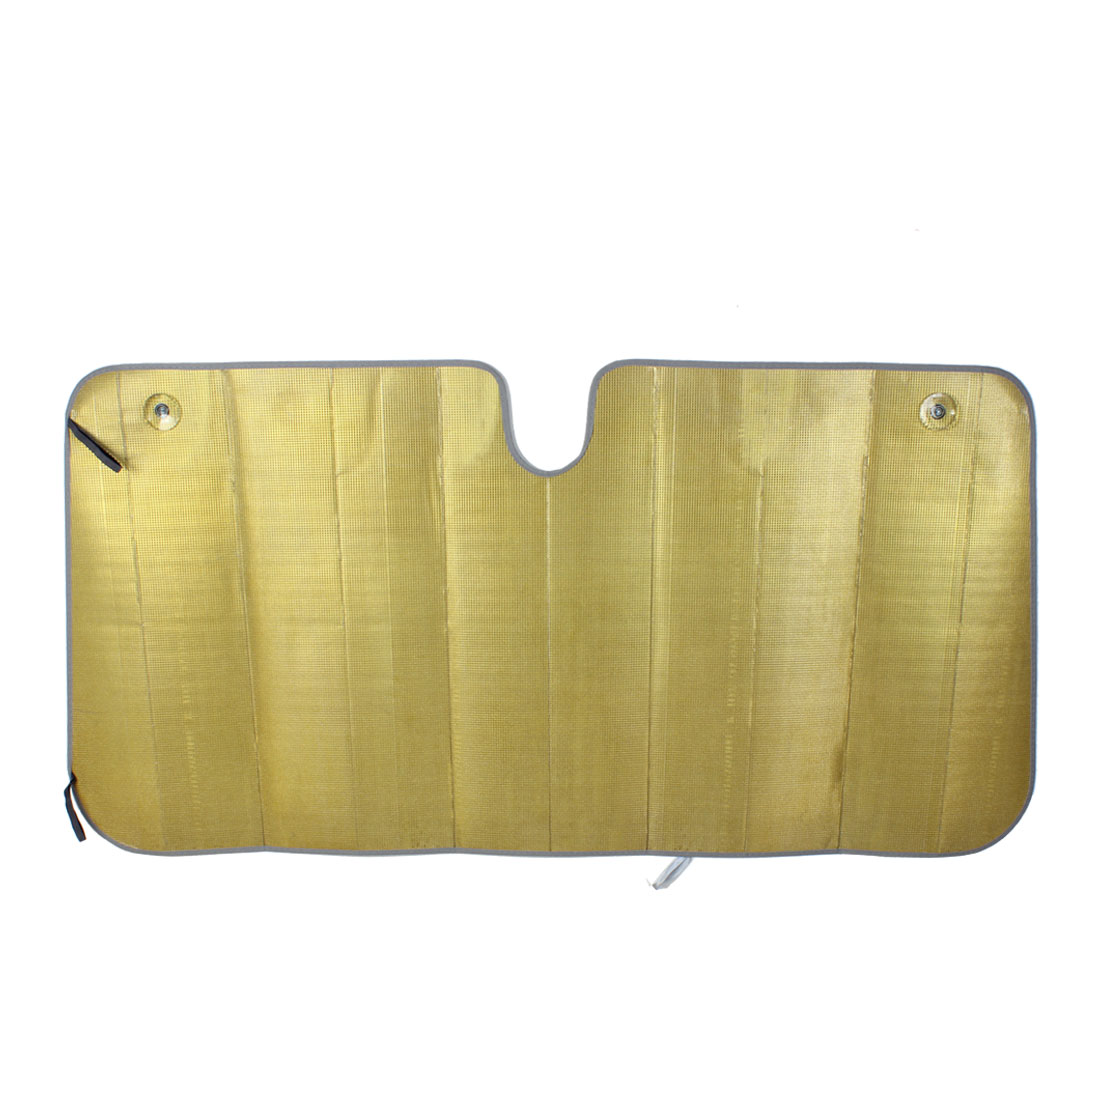 Gold Tone Foldable Auto Front Rear Windscreen Sunshade Cover 142cm x 70cm